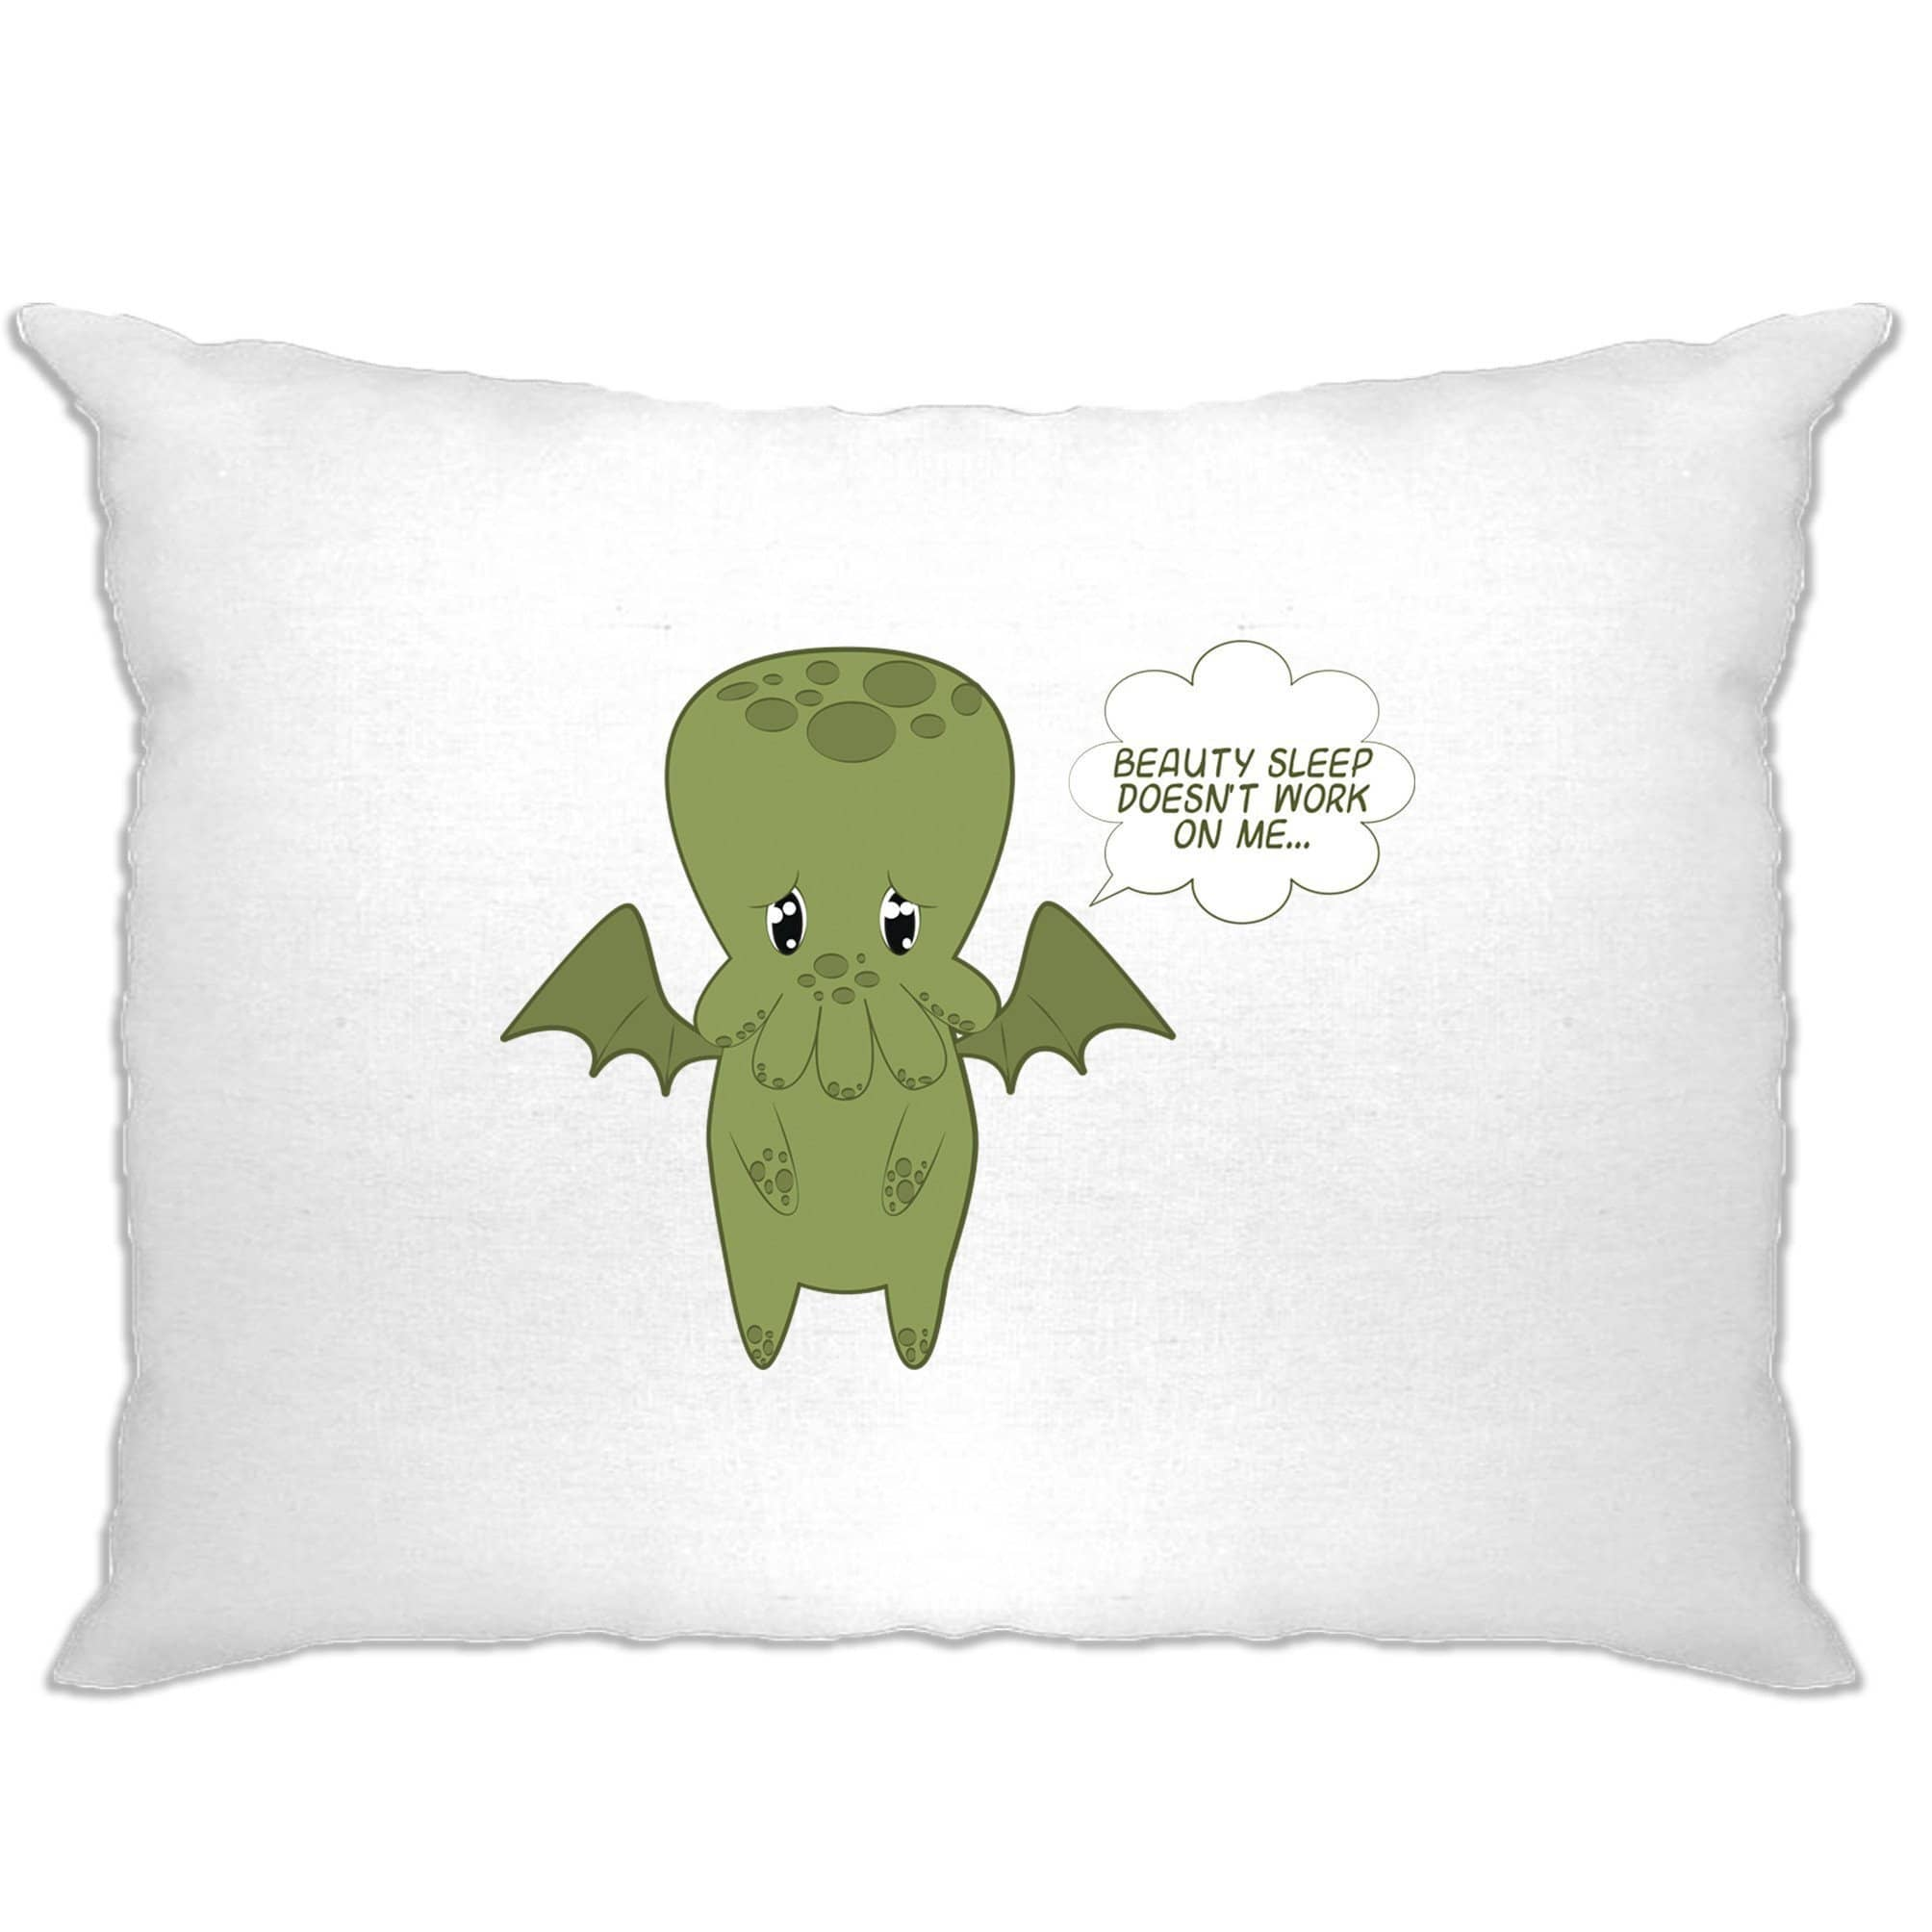 Cute Cthulhu Pillow Case Beauty Sleep Doesn't Work On Me